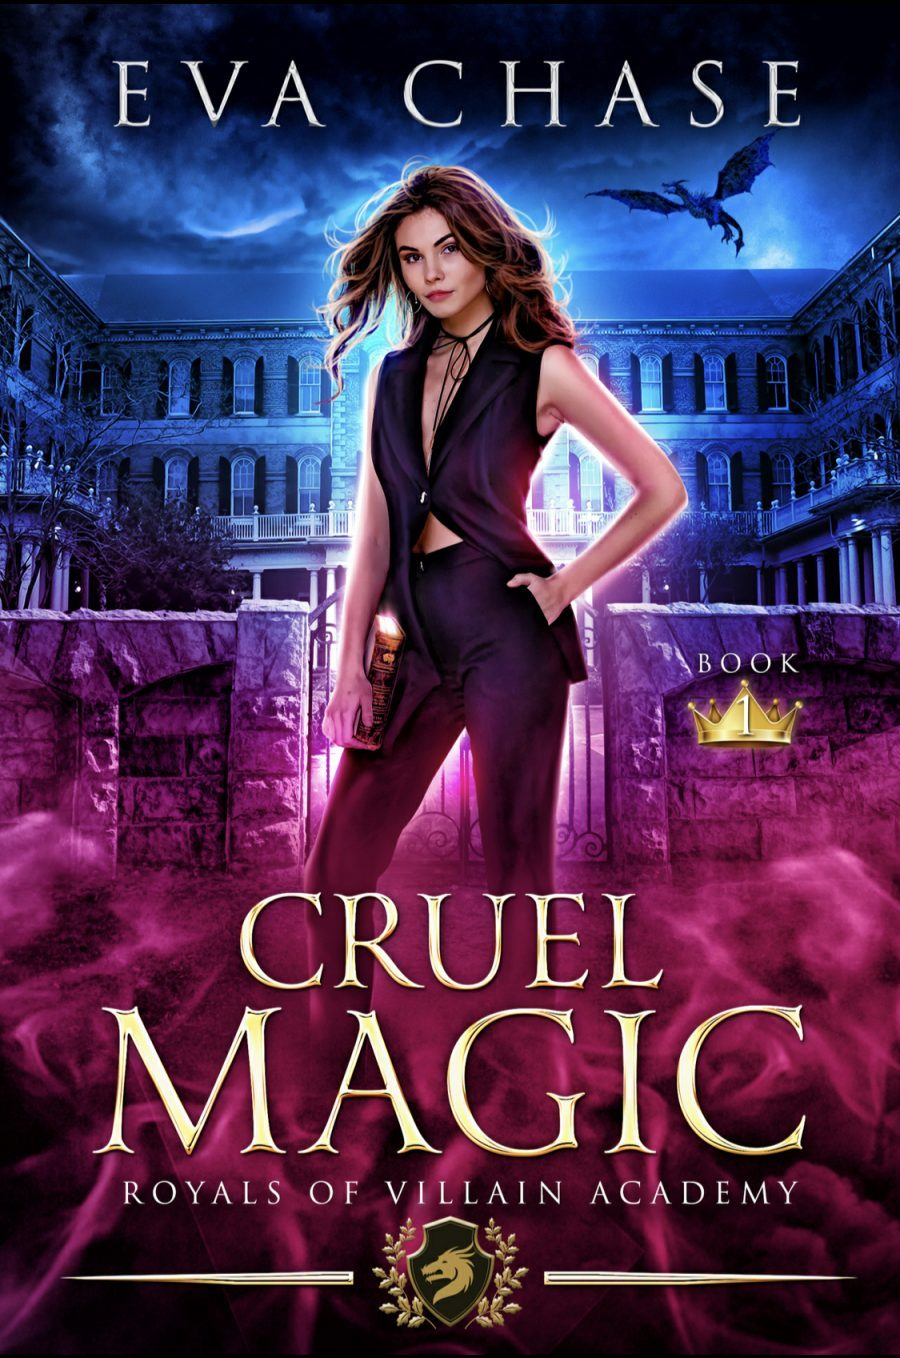 Cruel Magic by Eva Chase – A Book Review